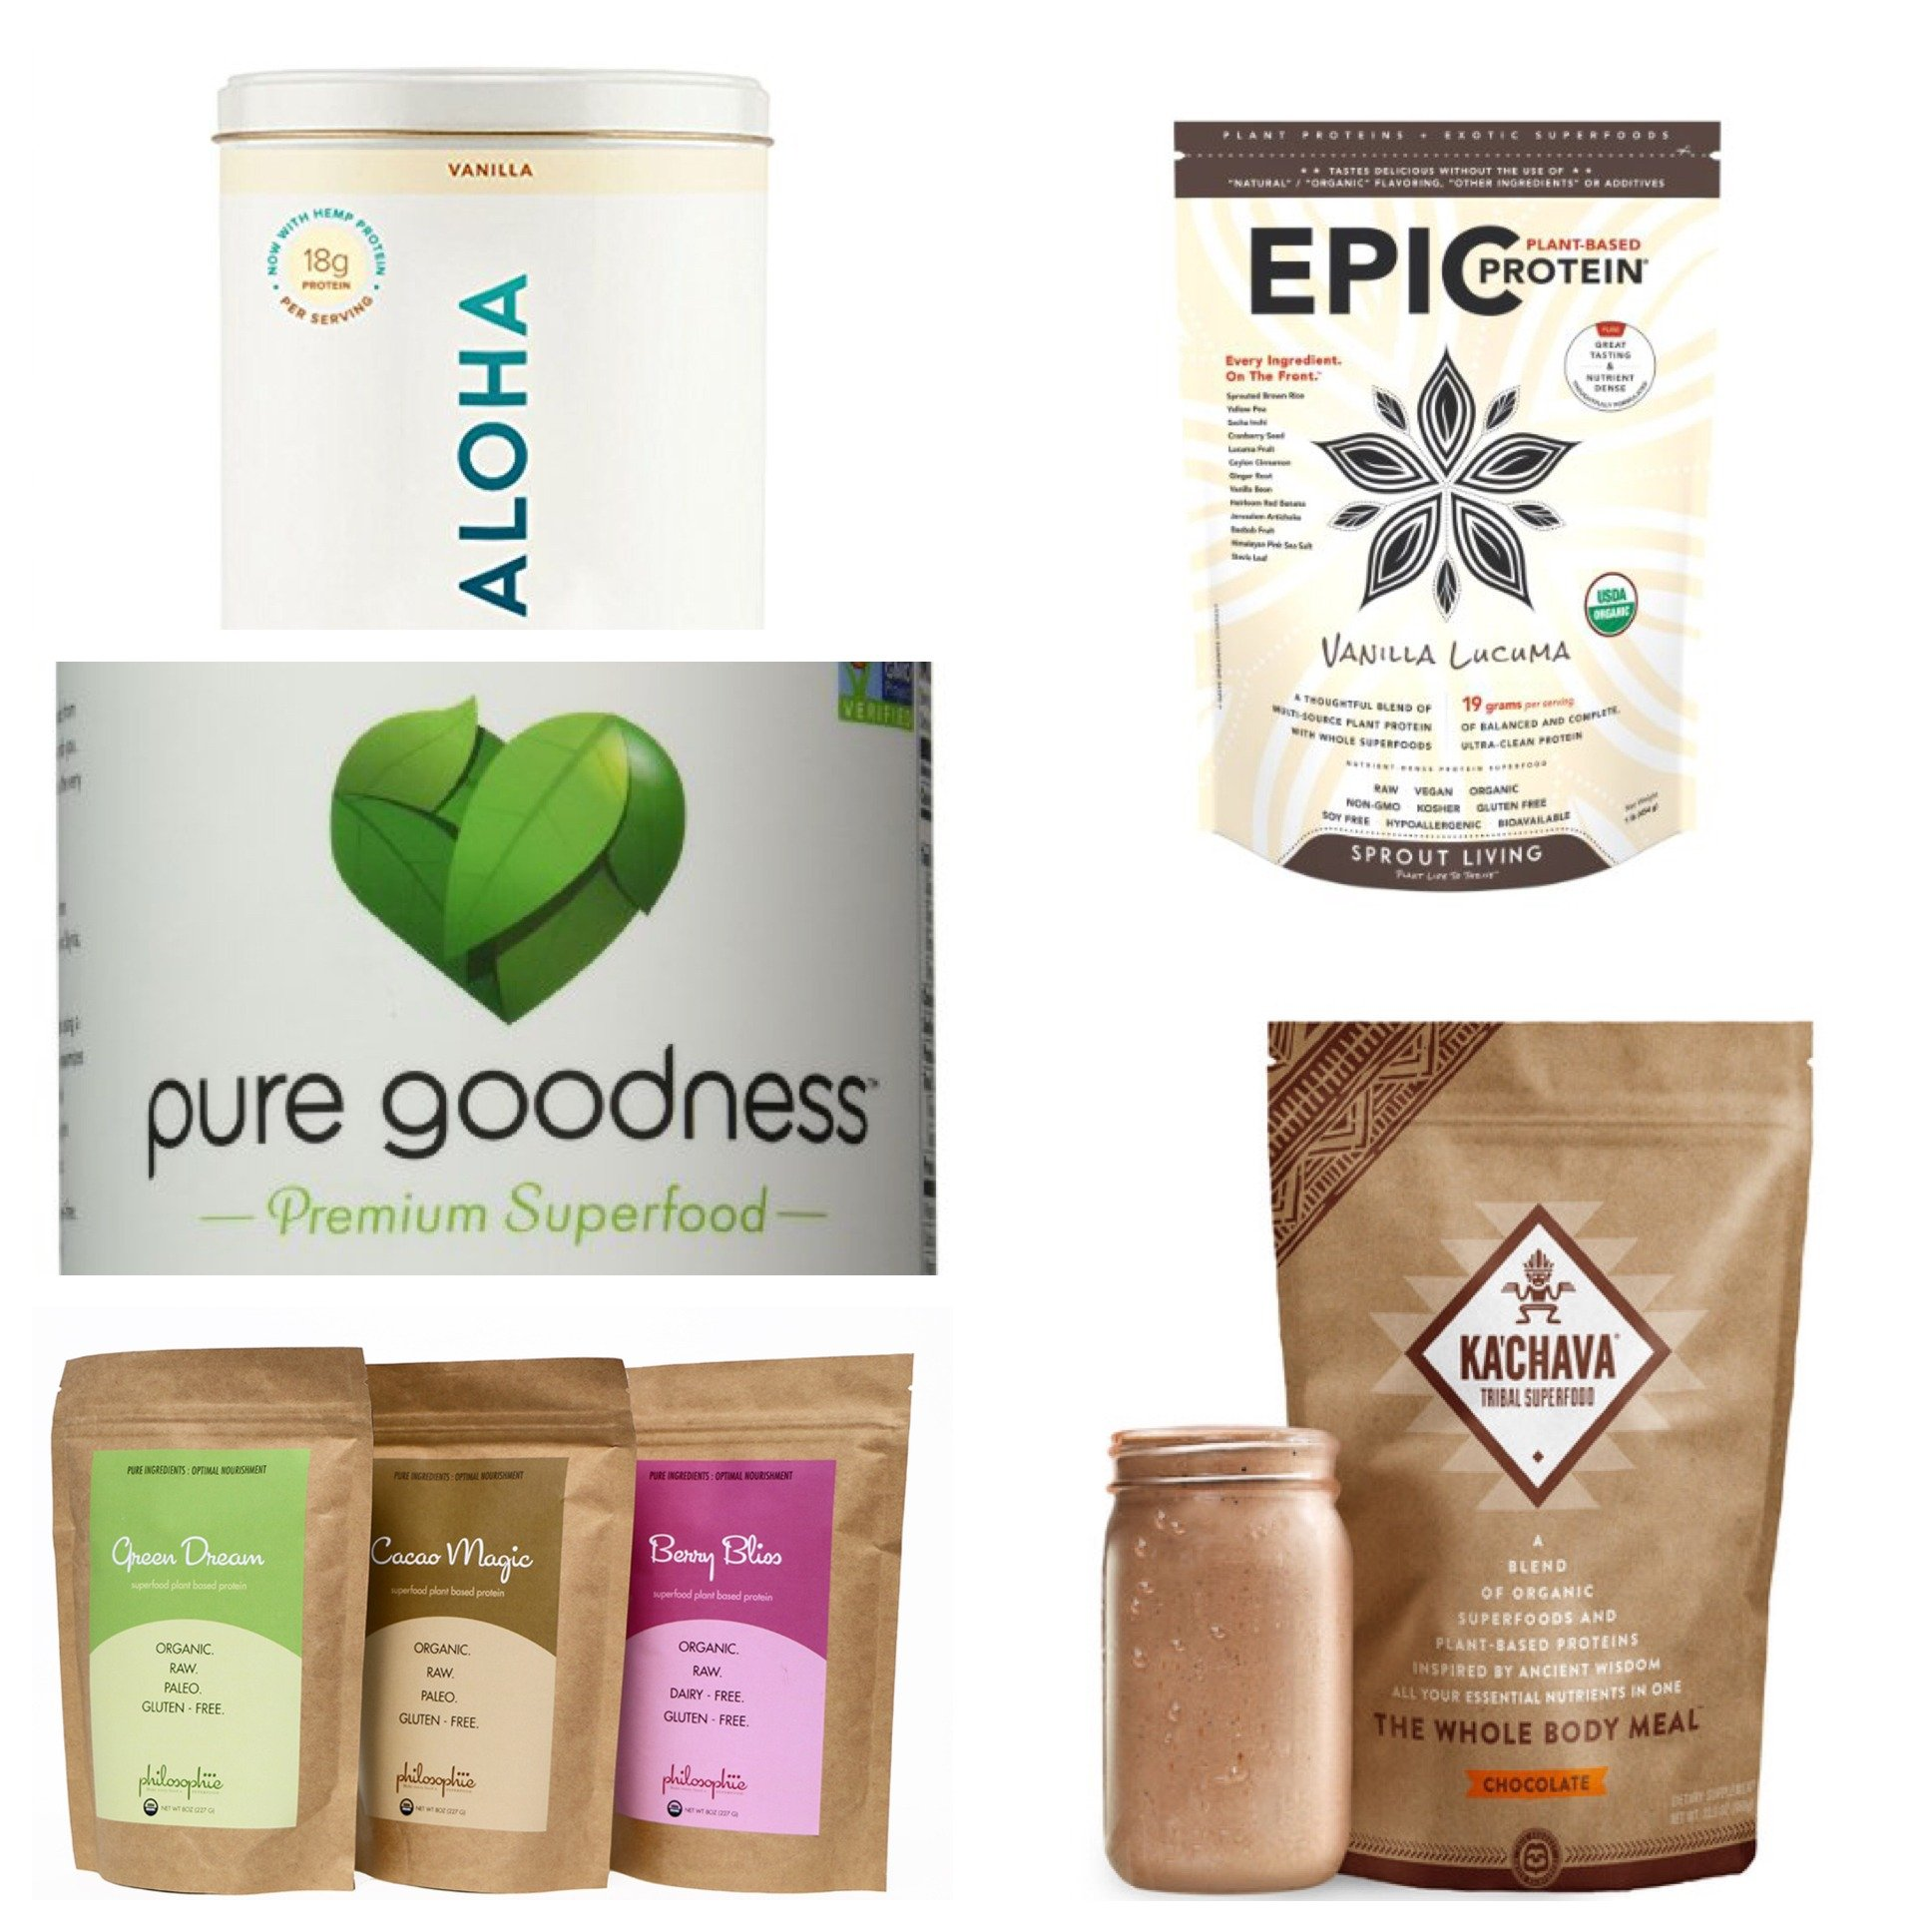 My Favorite Protein Powders Leahs Plate - My Favorite Clean, Plant-Based Protein Powders